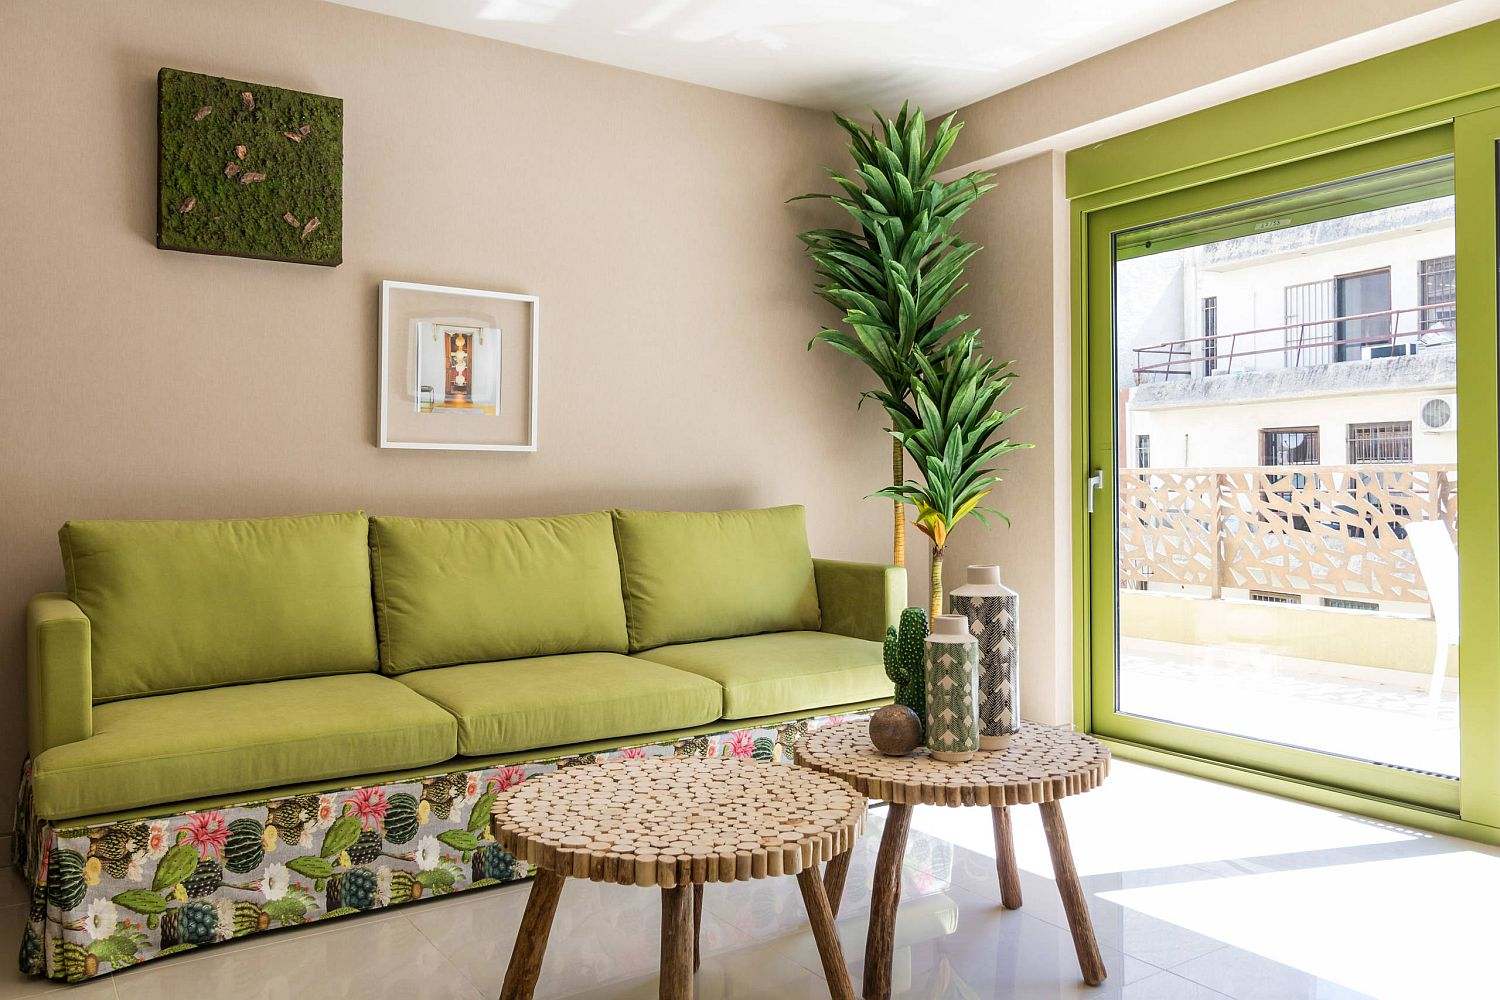 Giving the small living room color using pops of green